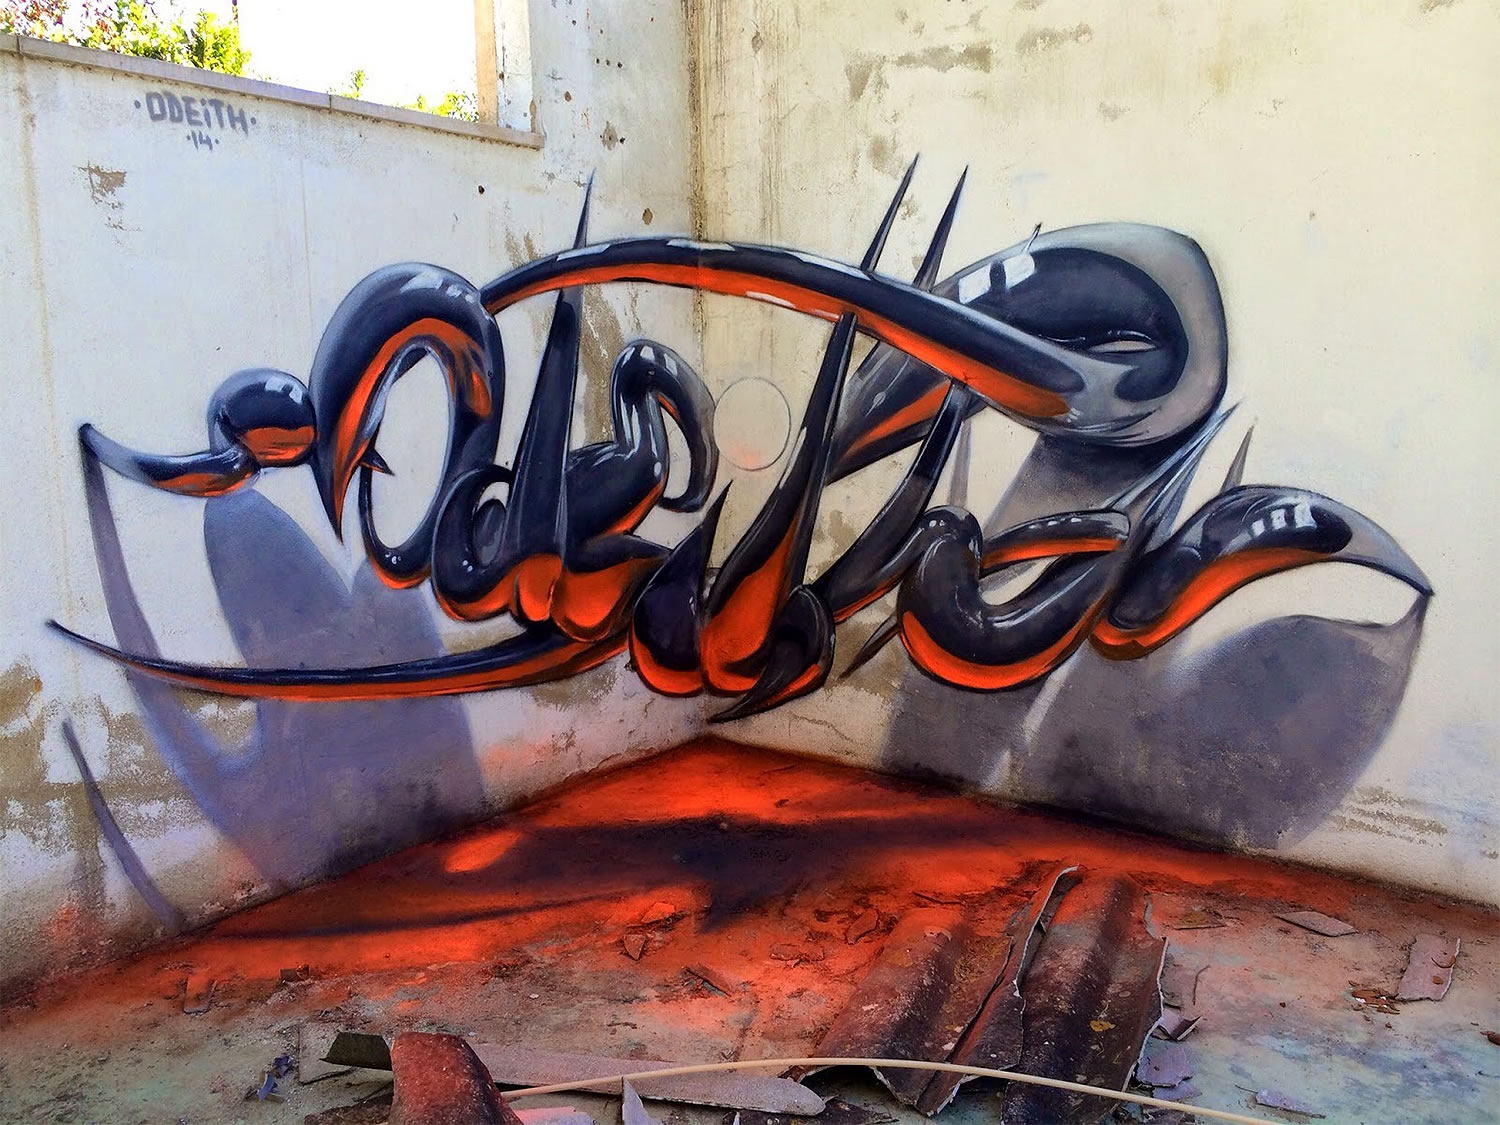 Crazy glowing red and grey lettering graffiti by odeith